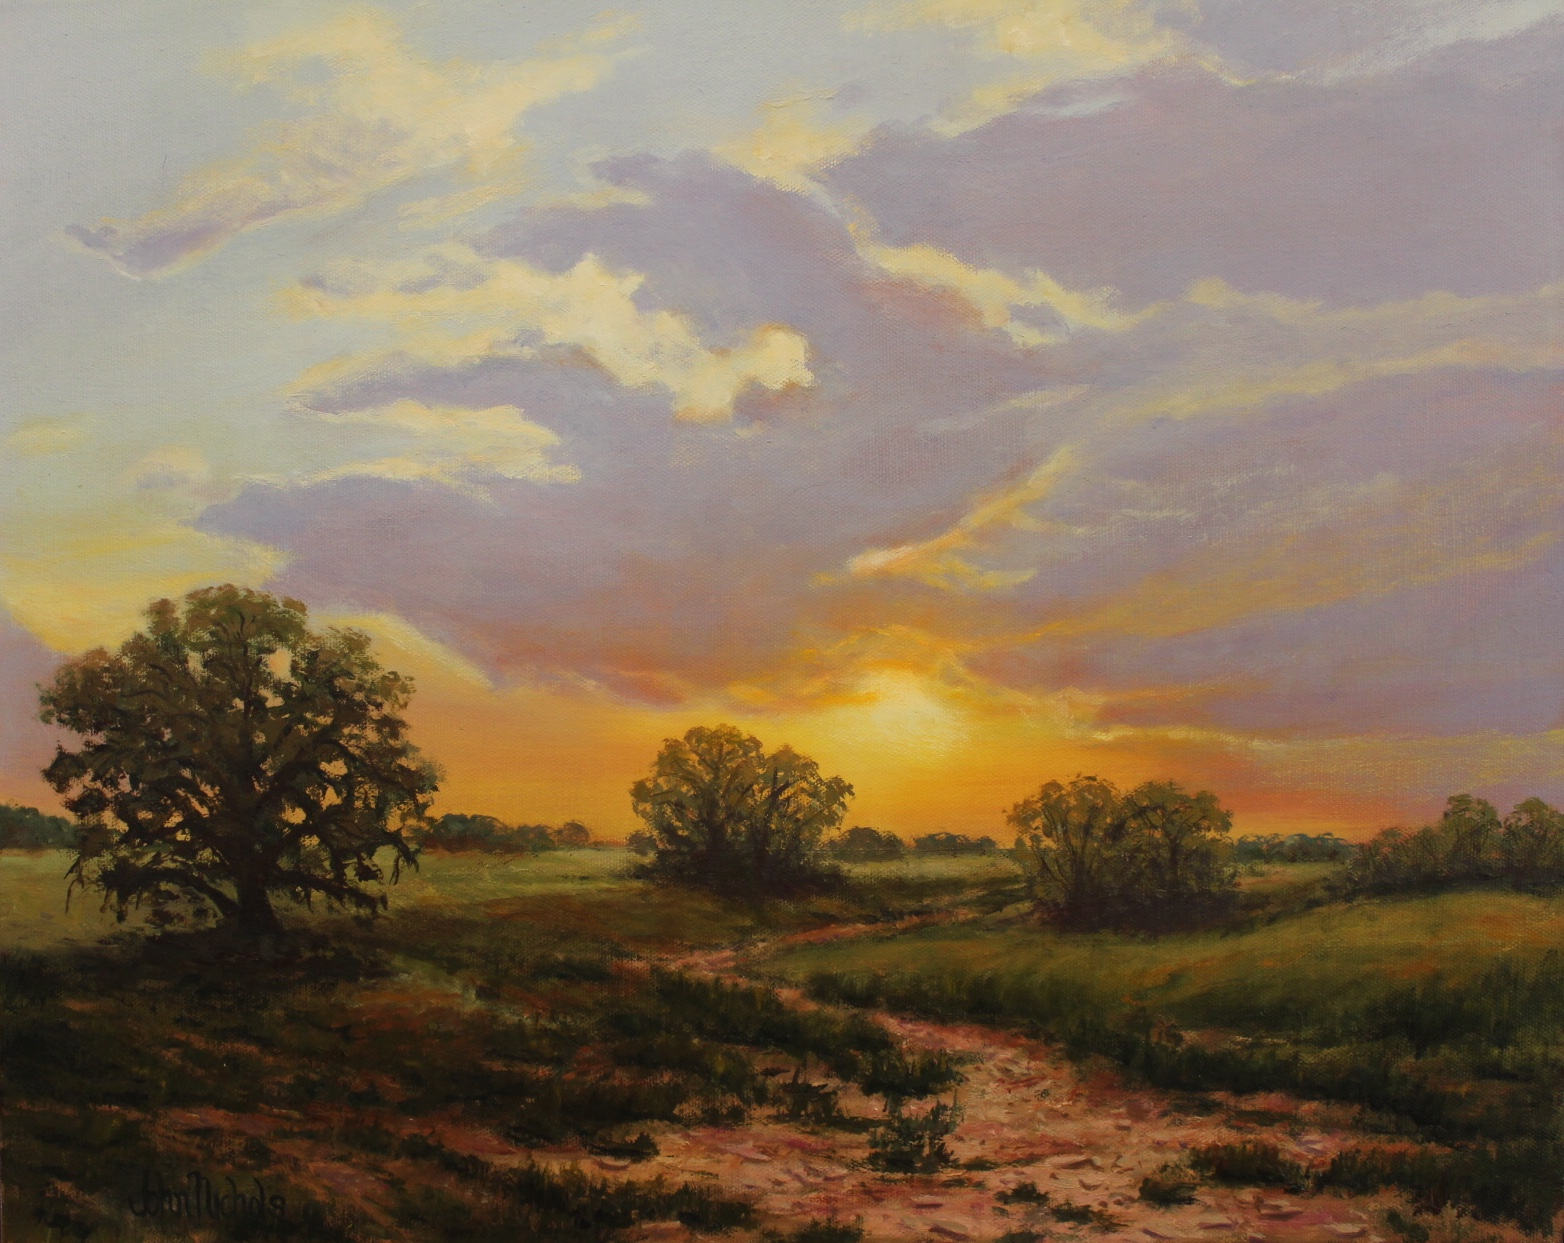 Valley Sunset, Oil by John Nichols